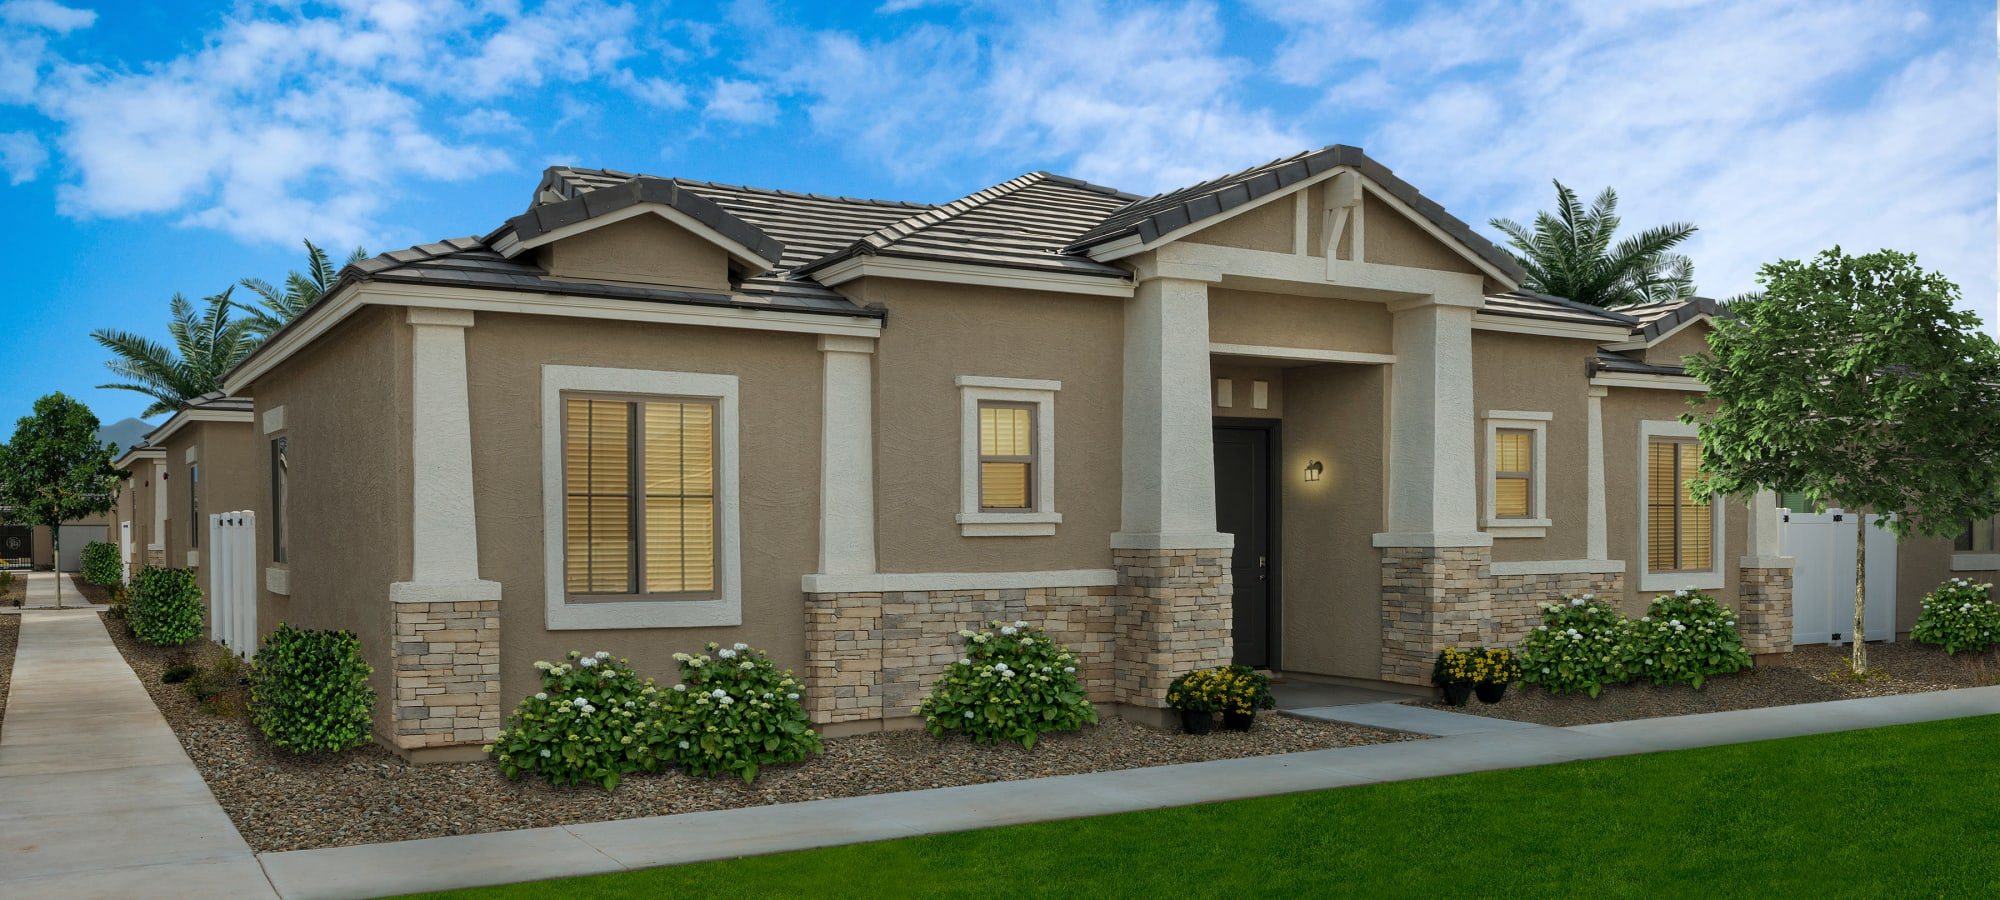 Exterior view of the beautiful apartment homes at Christopher Todd Communities On Happy Valley in Peoria, Arizona